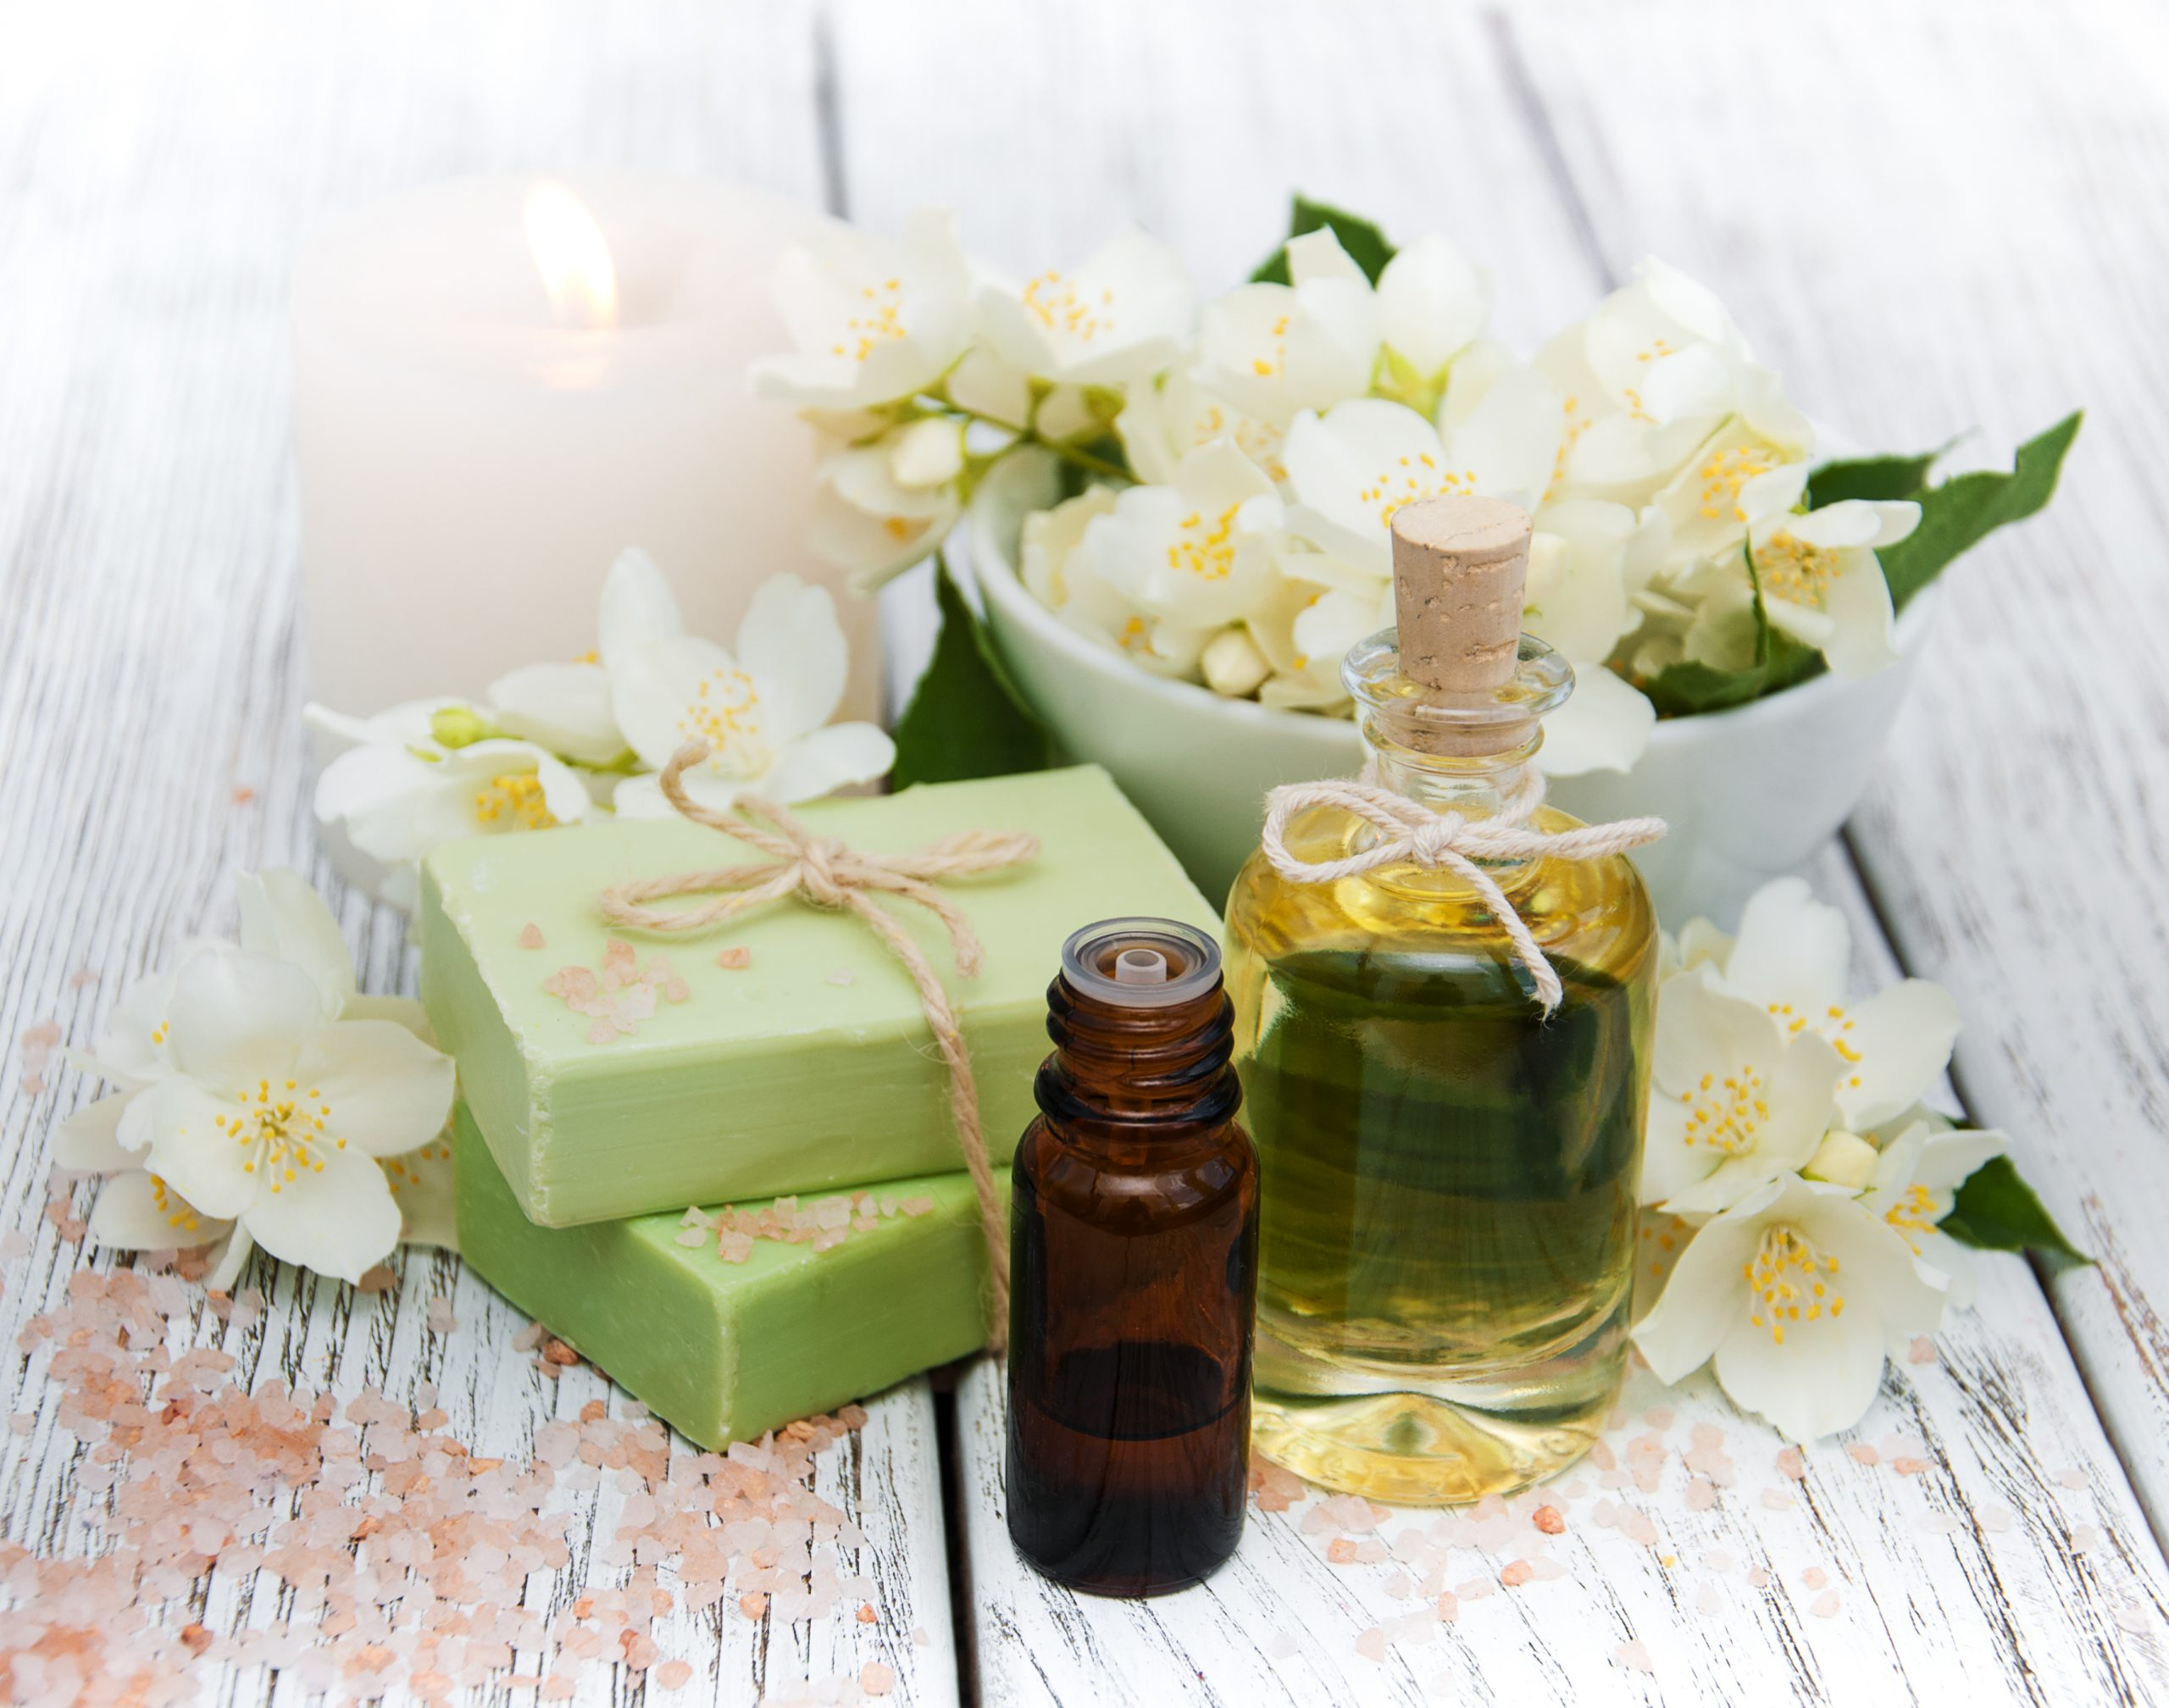 Combining The Best Essential Oils For Soap Making Countryside